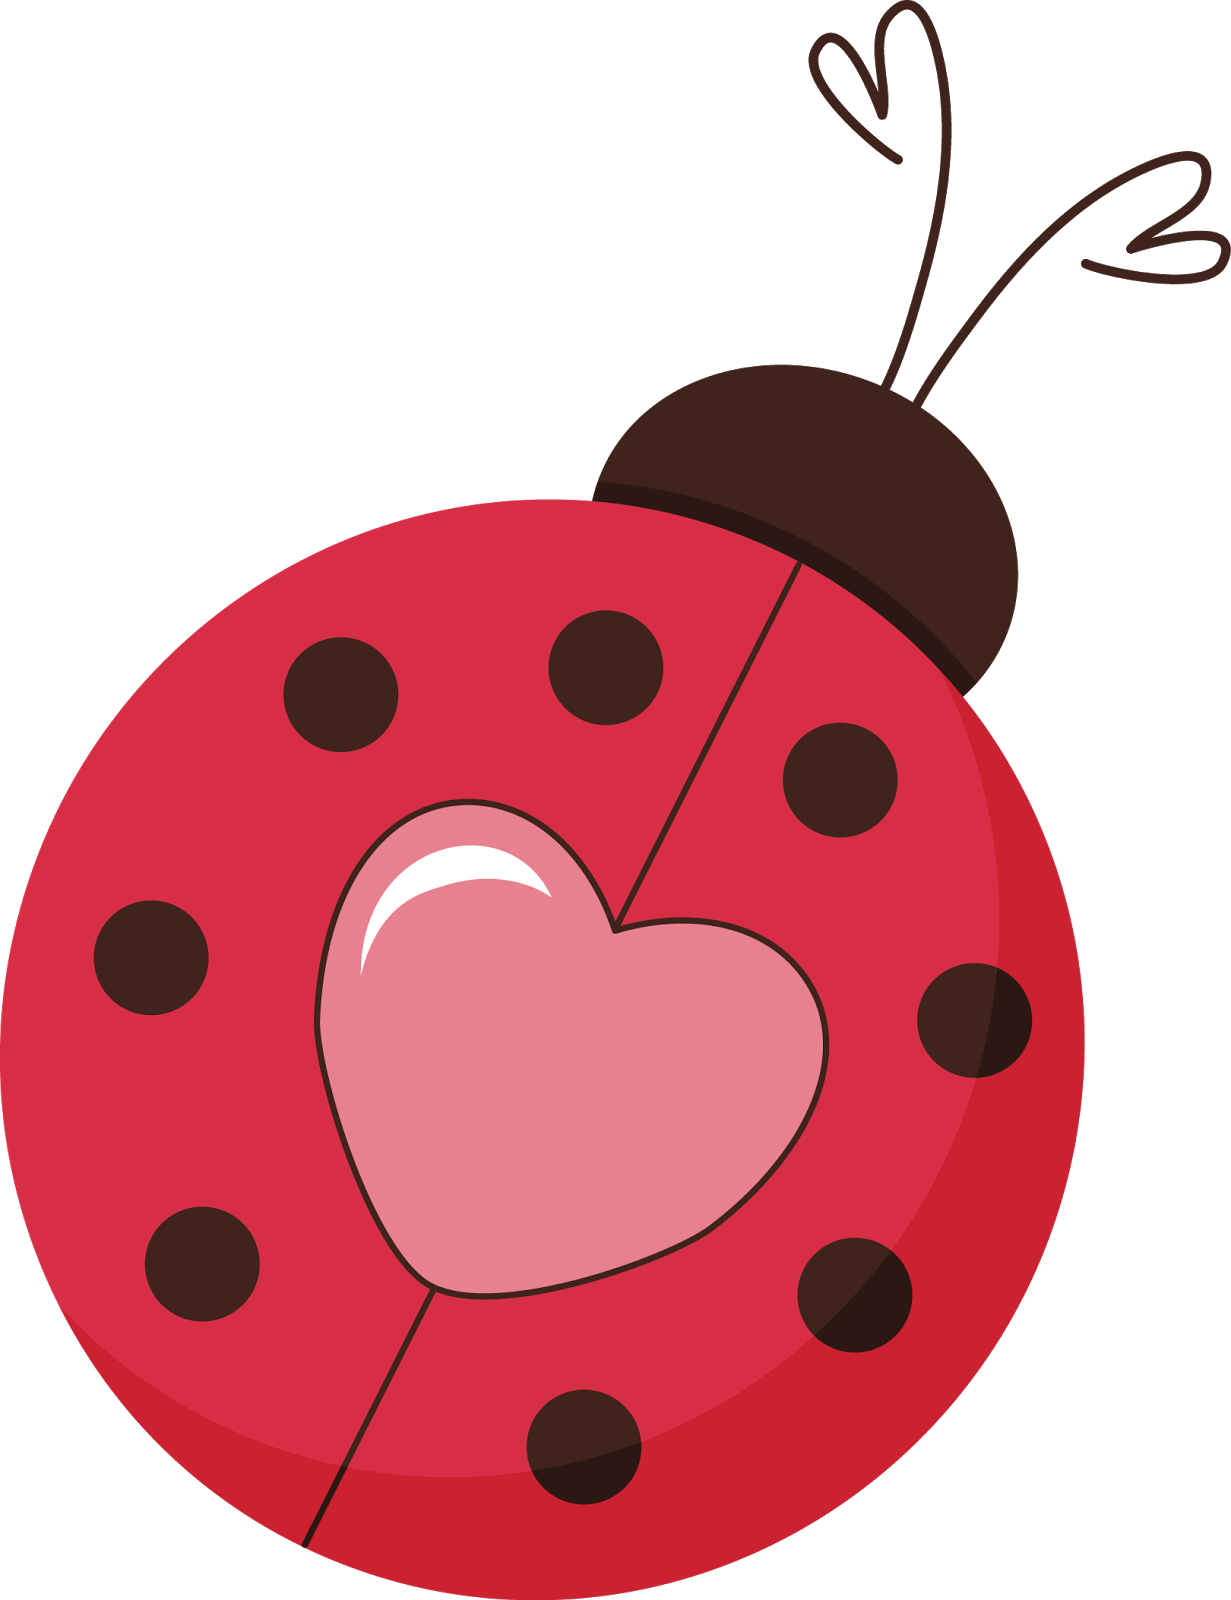 Transparent ladybug heart. Pin by peggie barker